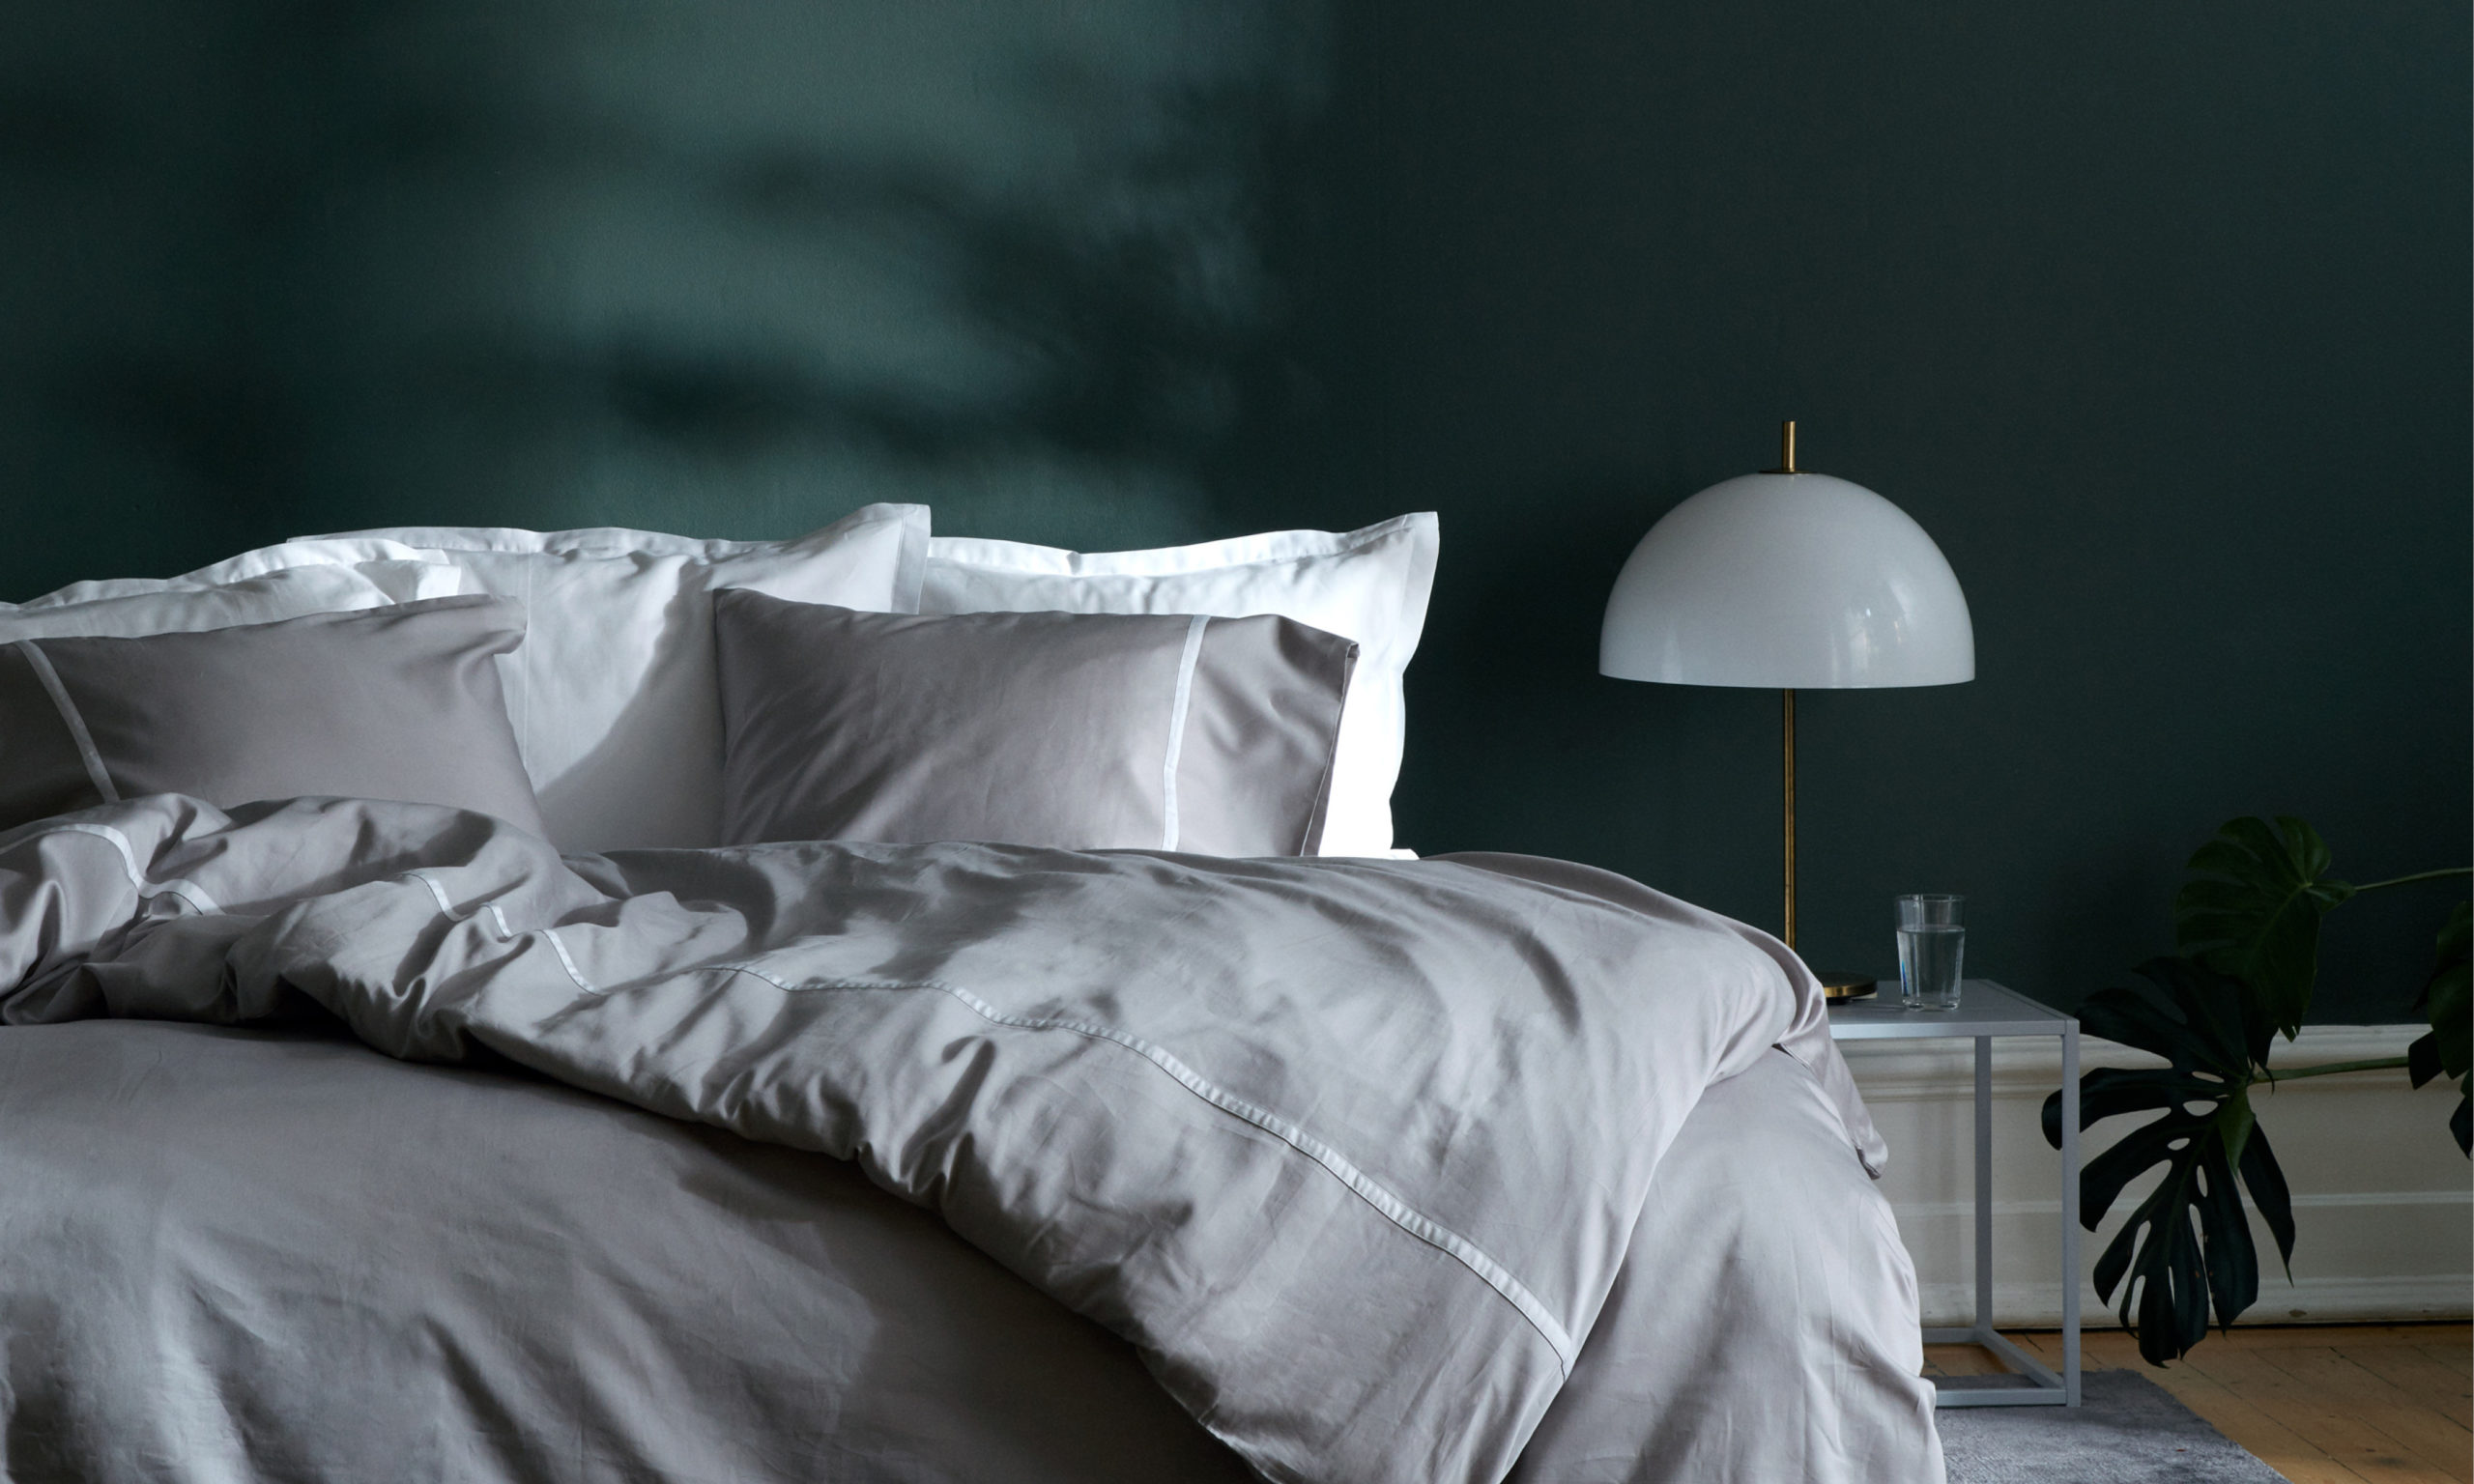 Bed with grey sheets against dark green wall